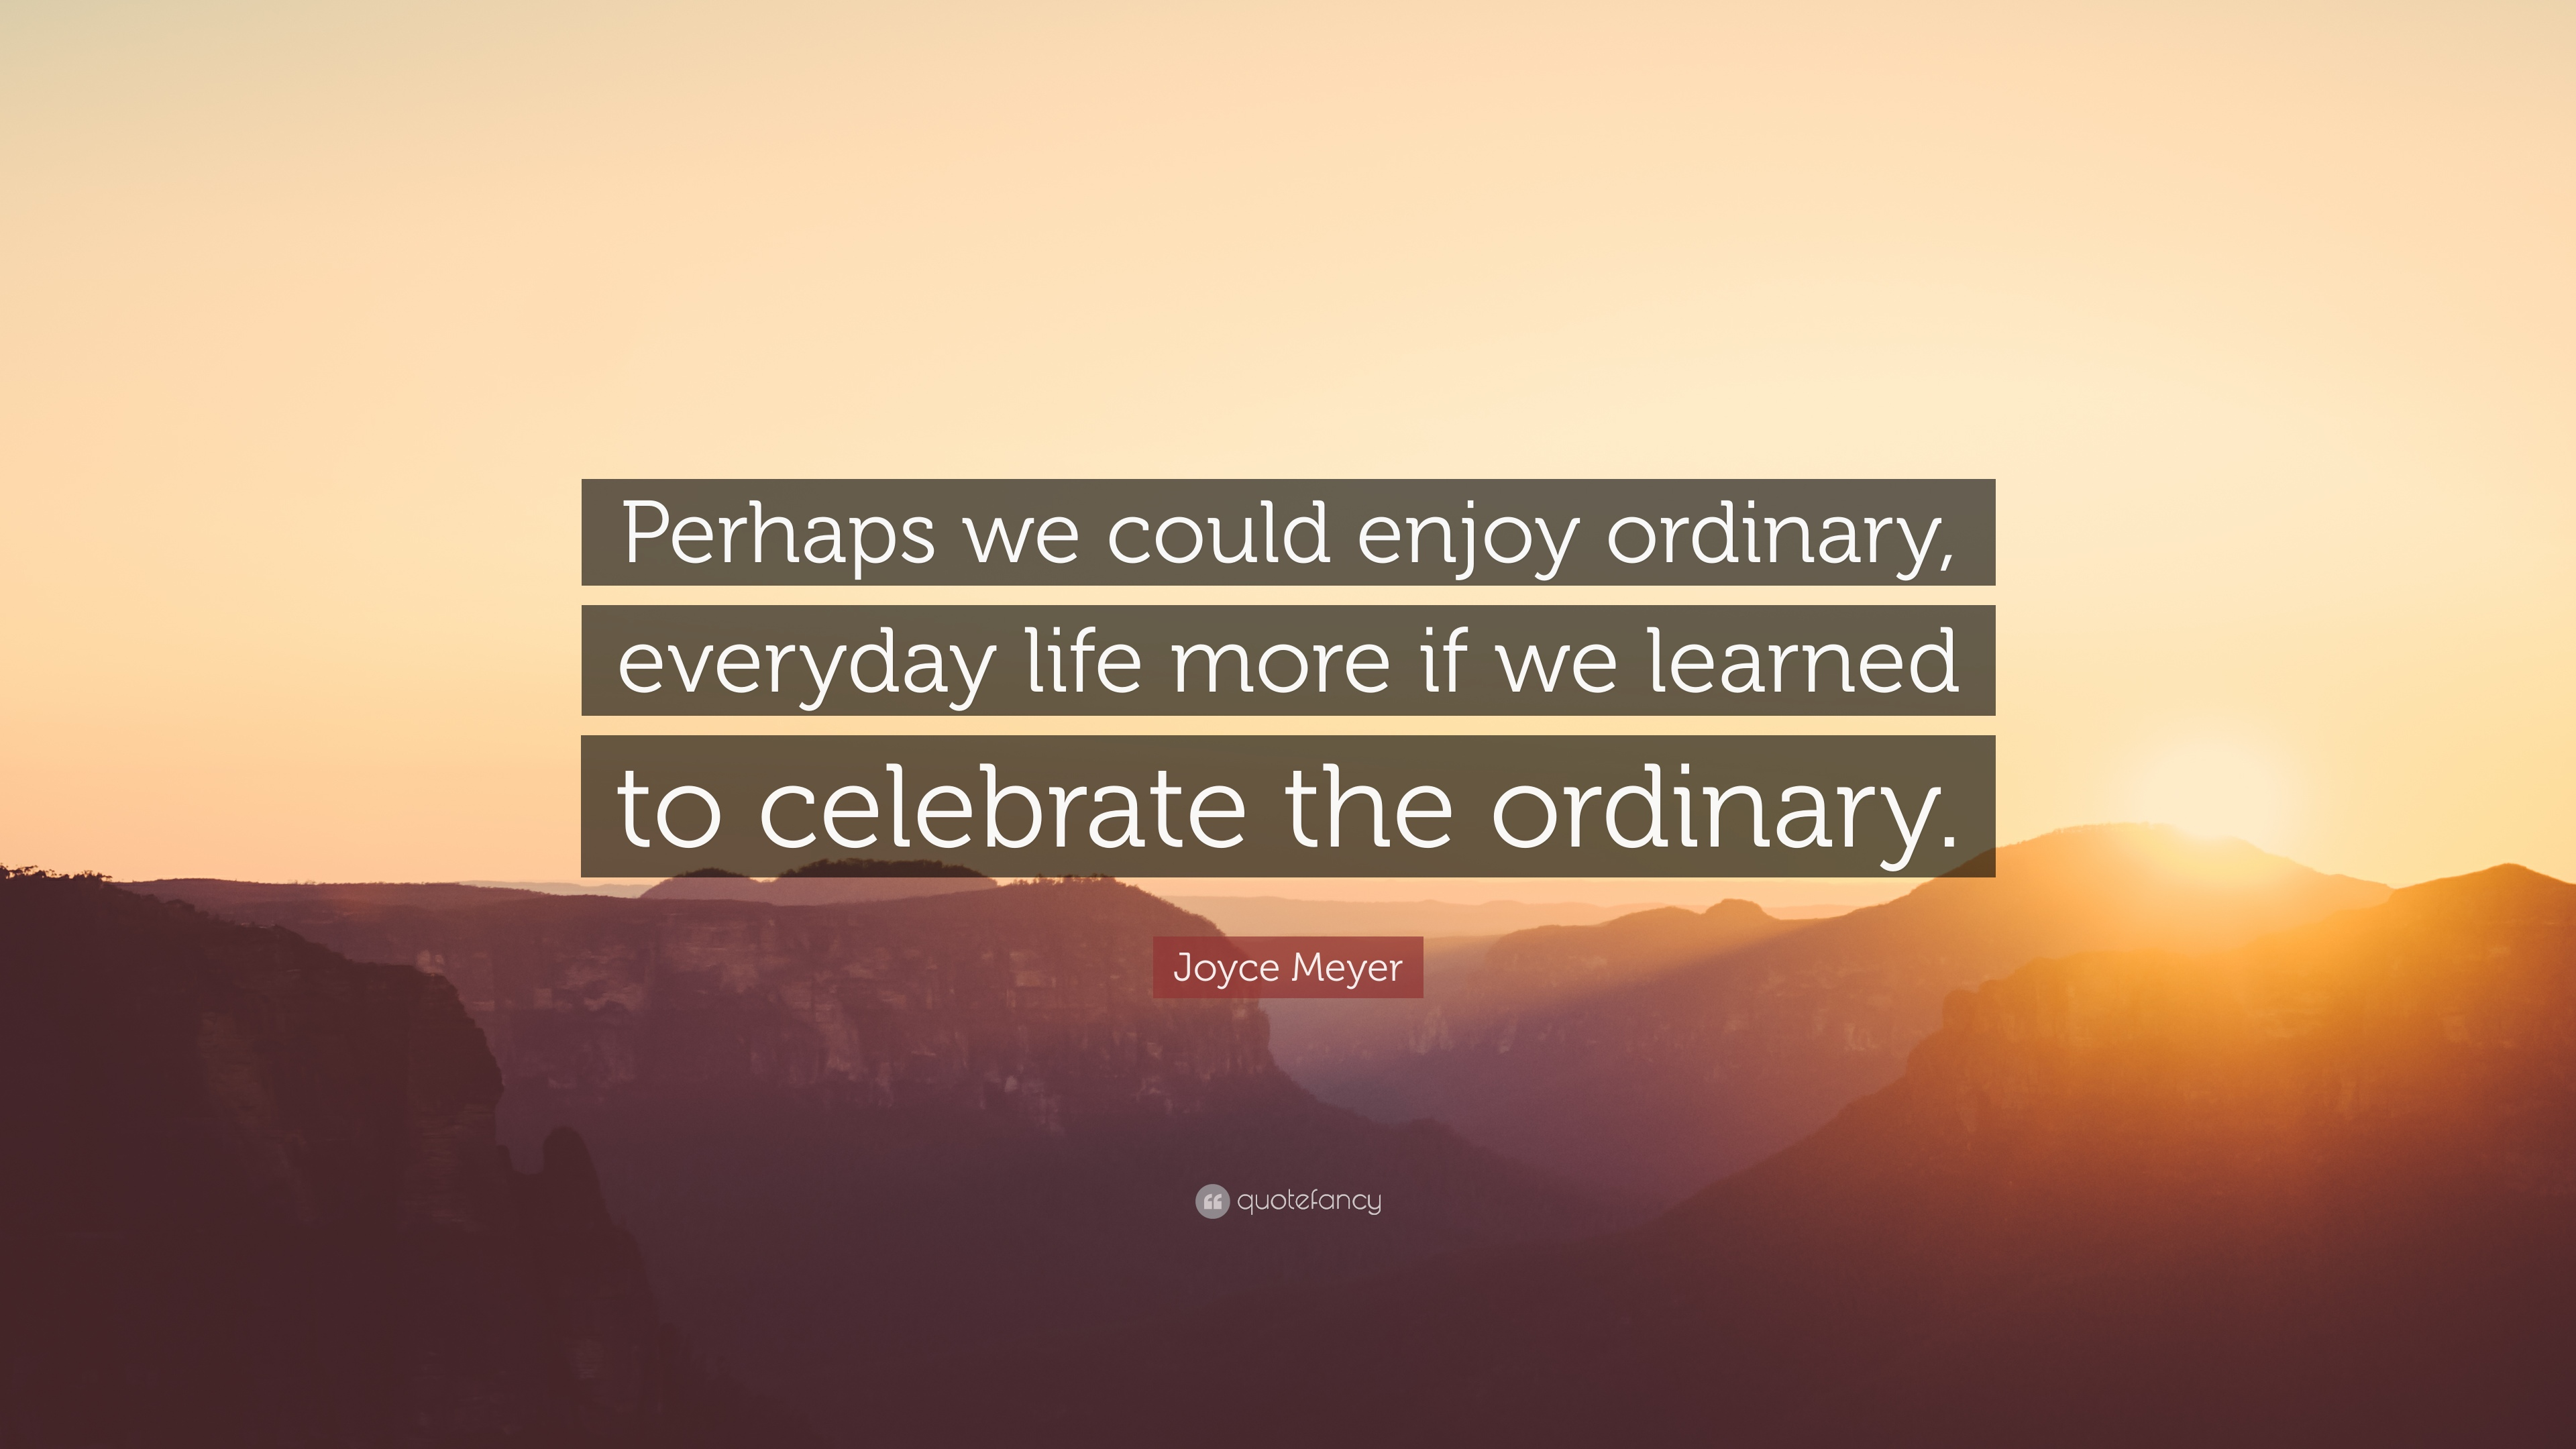 Delightful Joyce Meyer Quote: U201cPerhaps We Could Enjoy Ordinary, Everyday Life More If  We